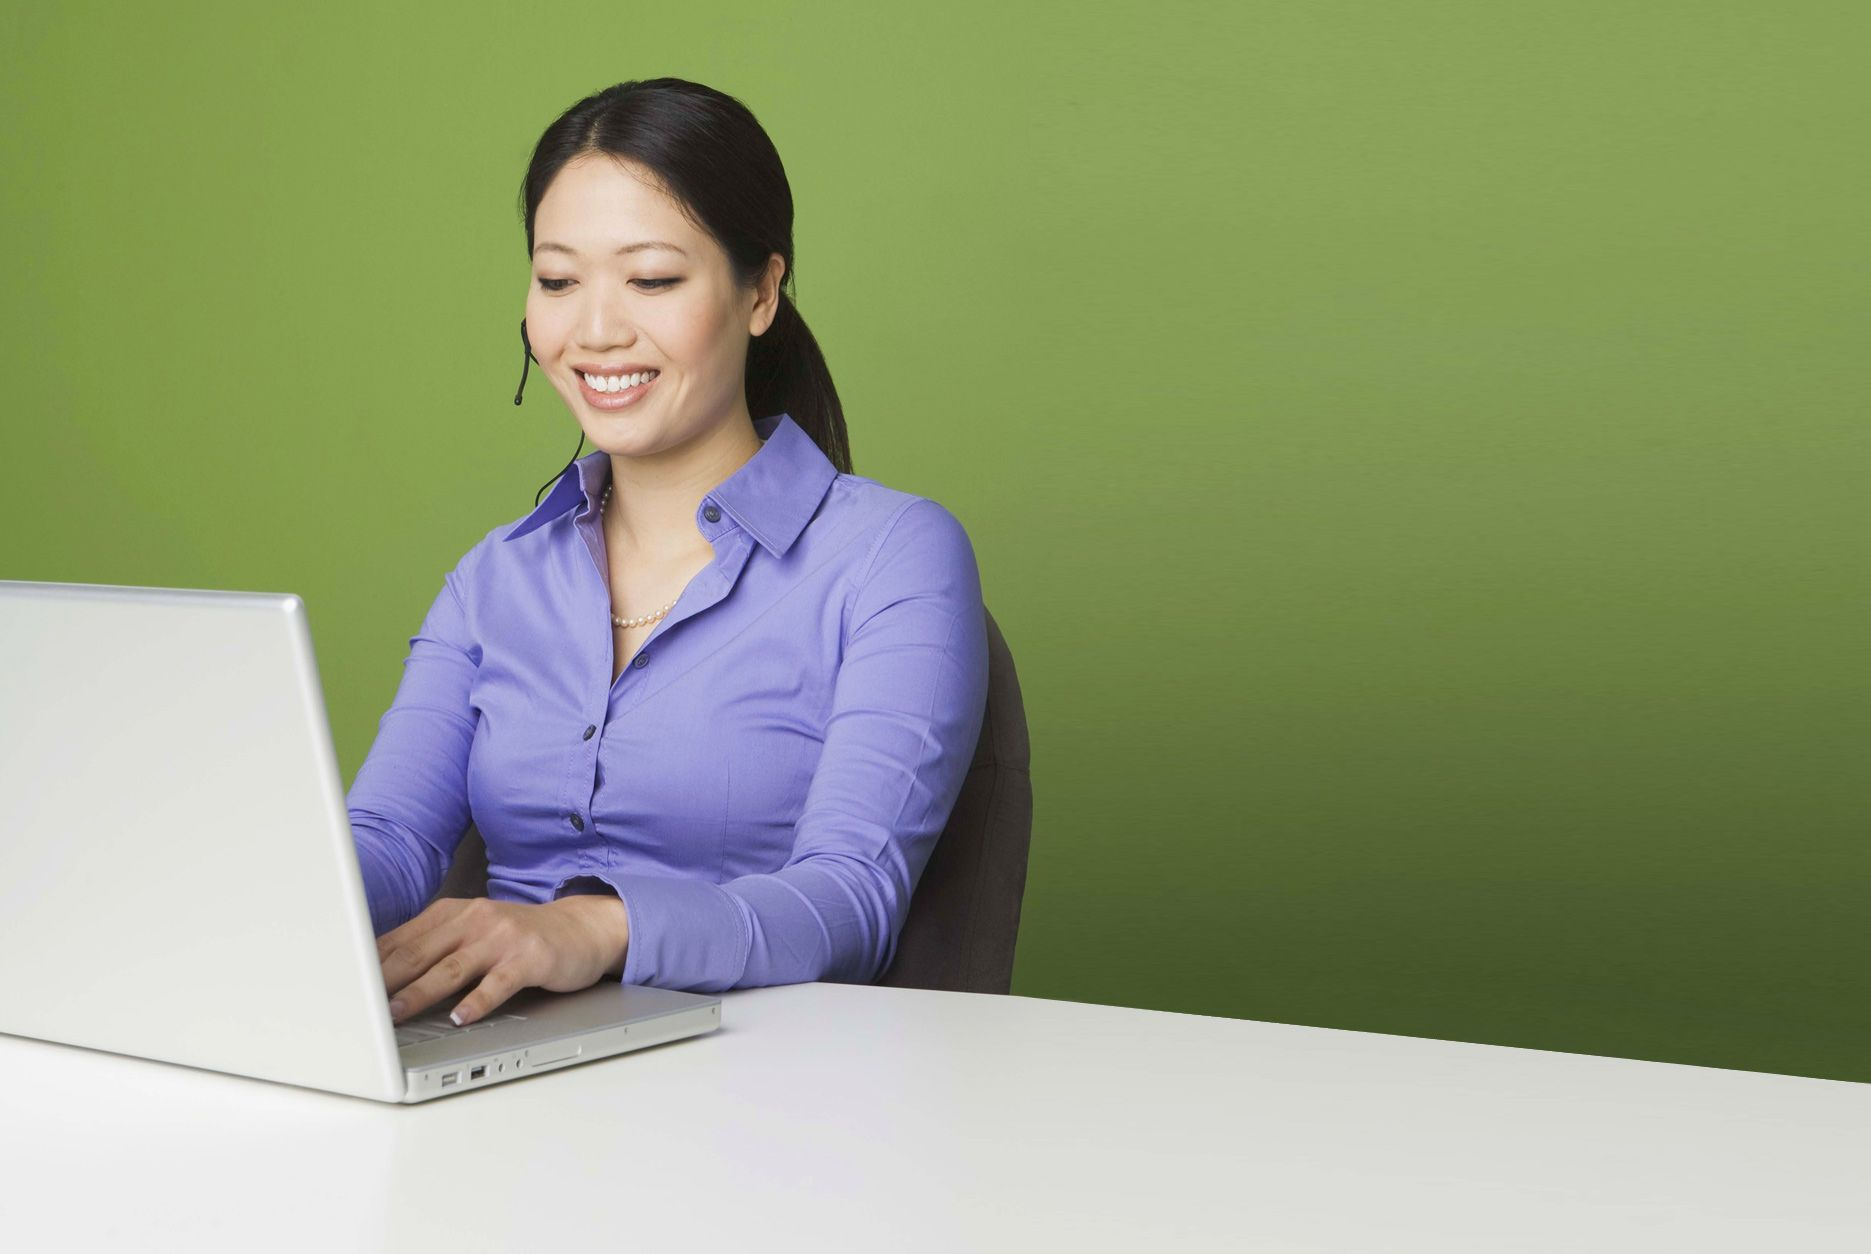 Work from Home! We're Hiring! Data entry jobs, Support